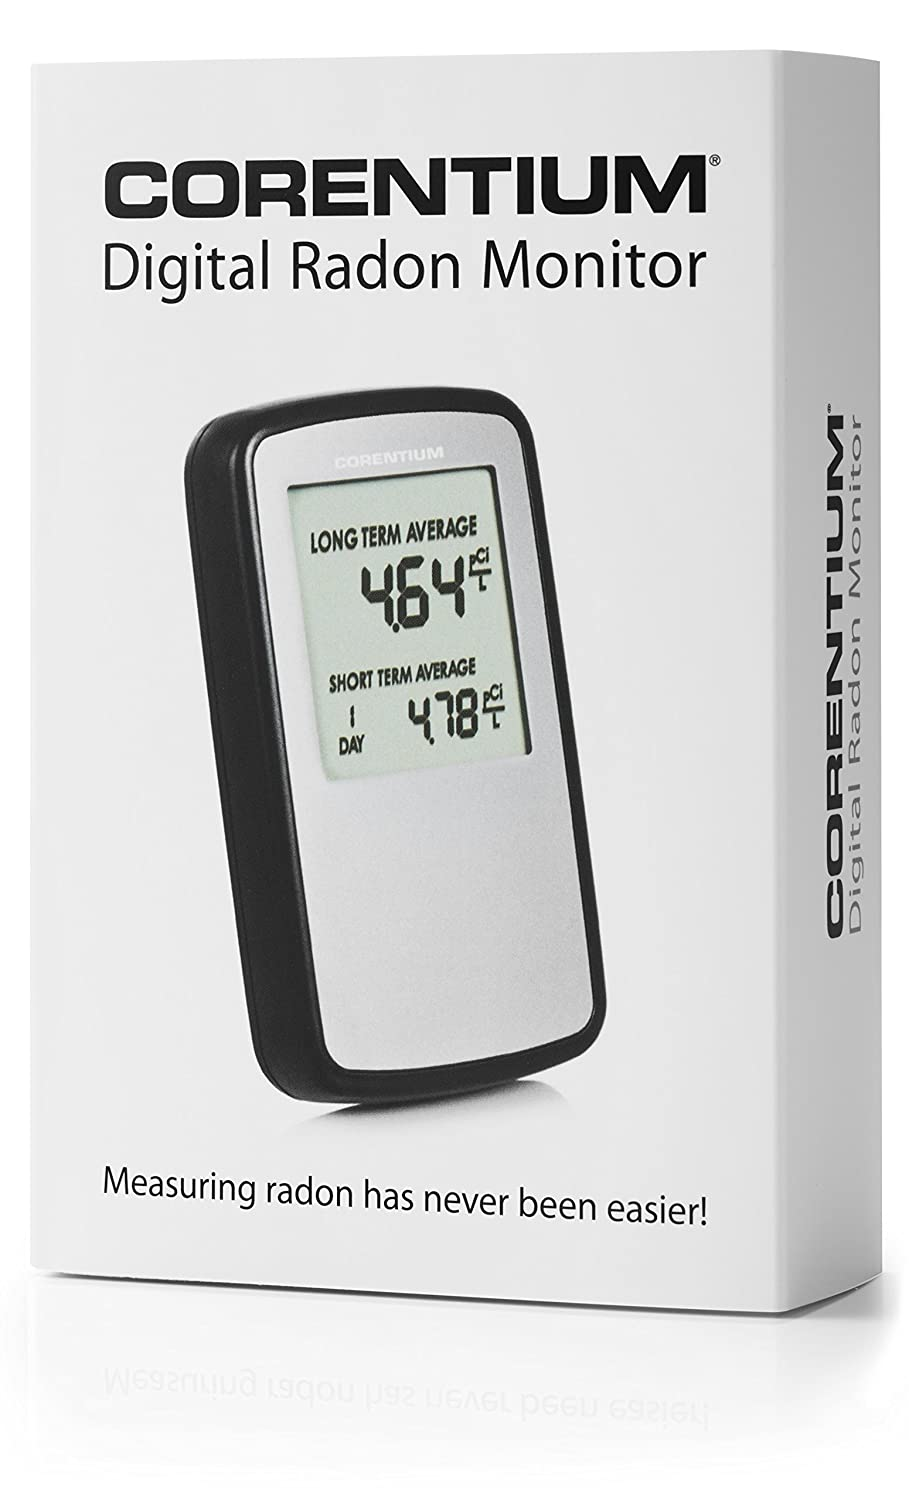 Corentium Digital Electronic Radon Gas Monitor - Detector - Test - Tester - USA version in pCi/L: Amazon.com: Industrial & Scientific